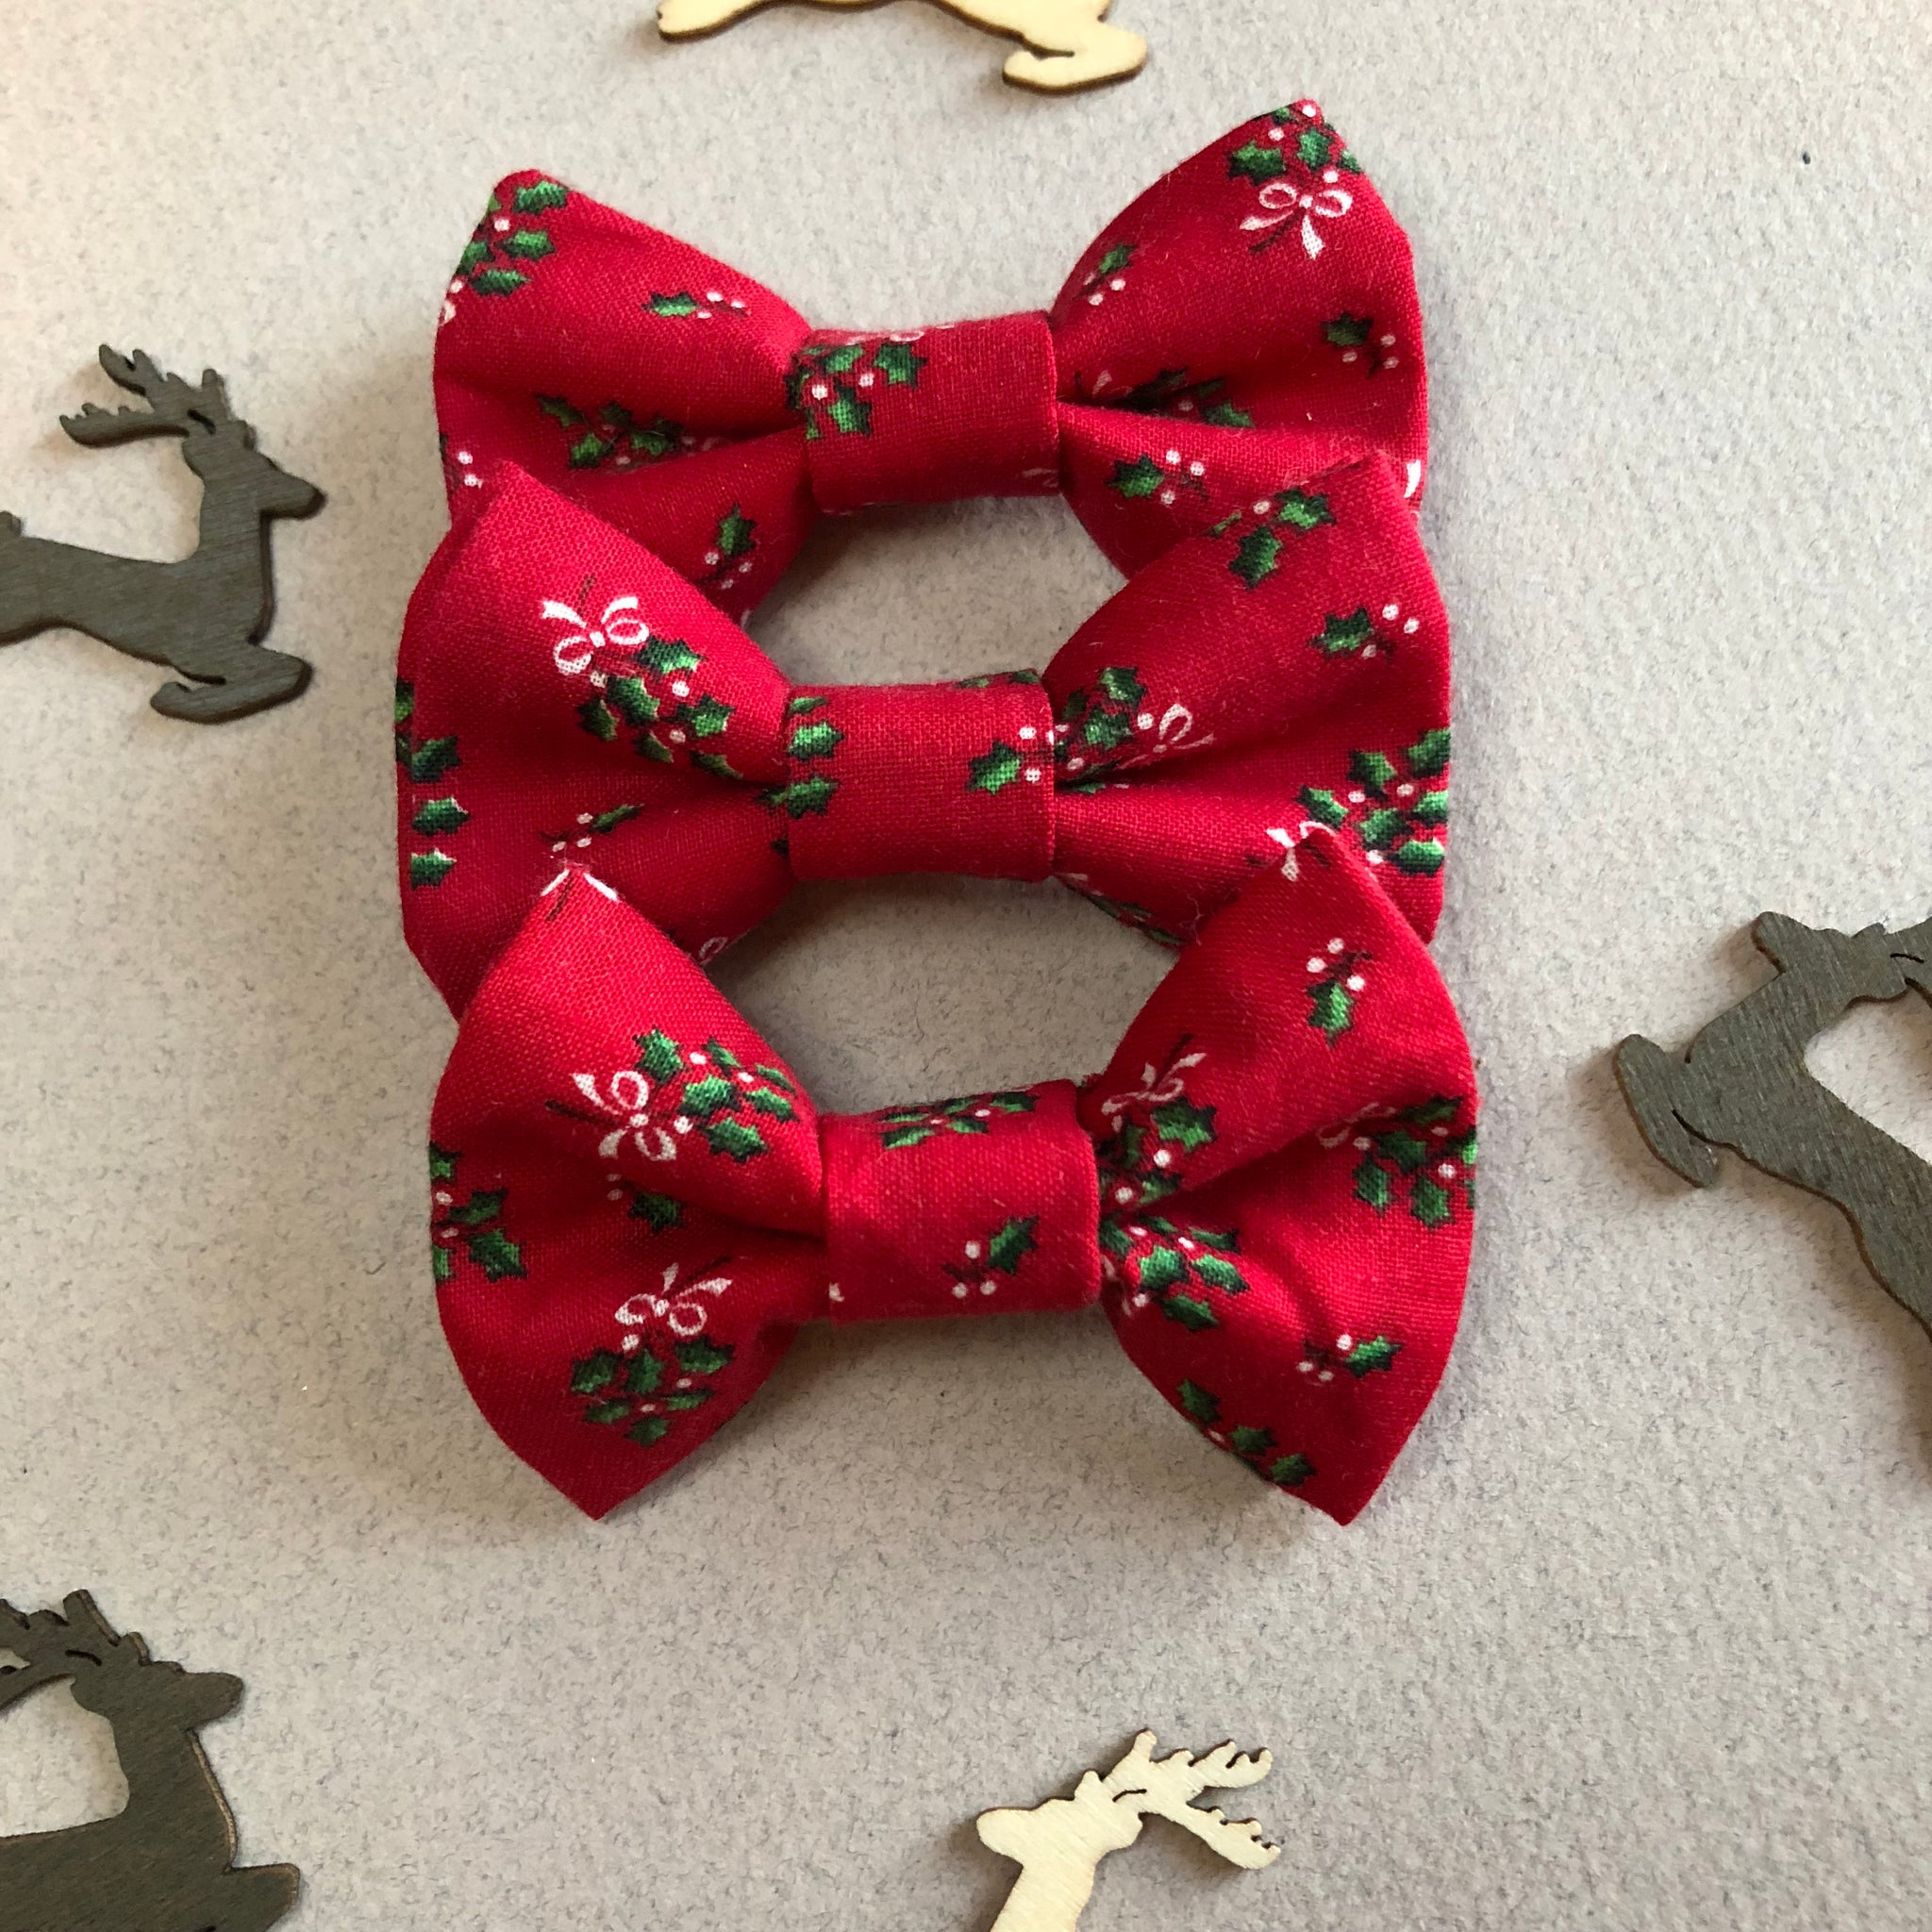 Vintage red poinsettia double layer bow ties